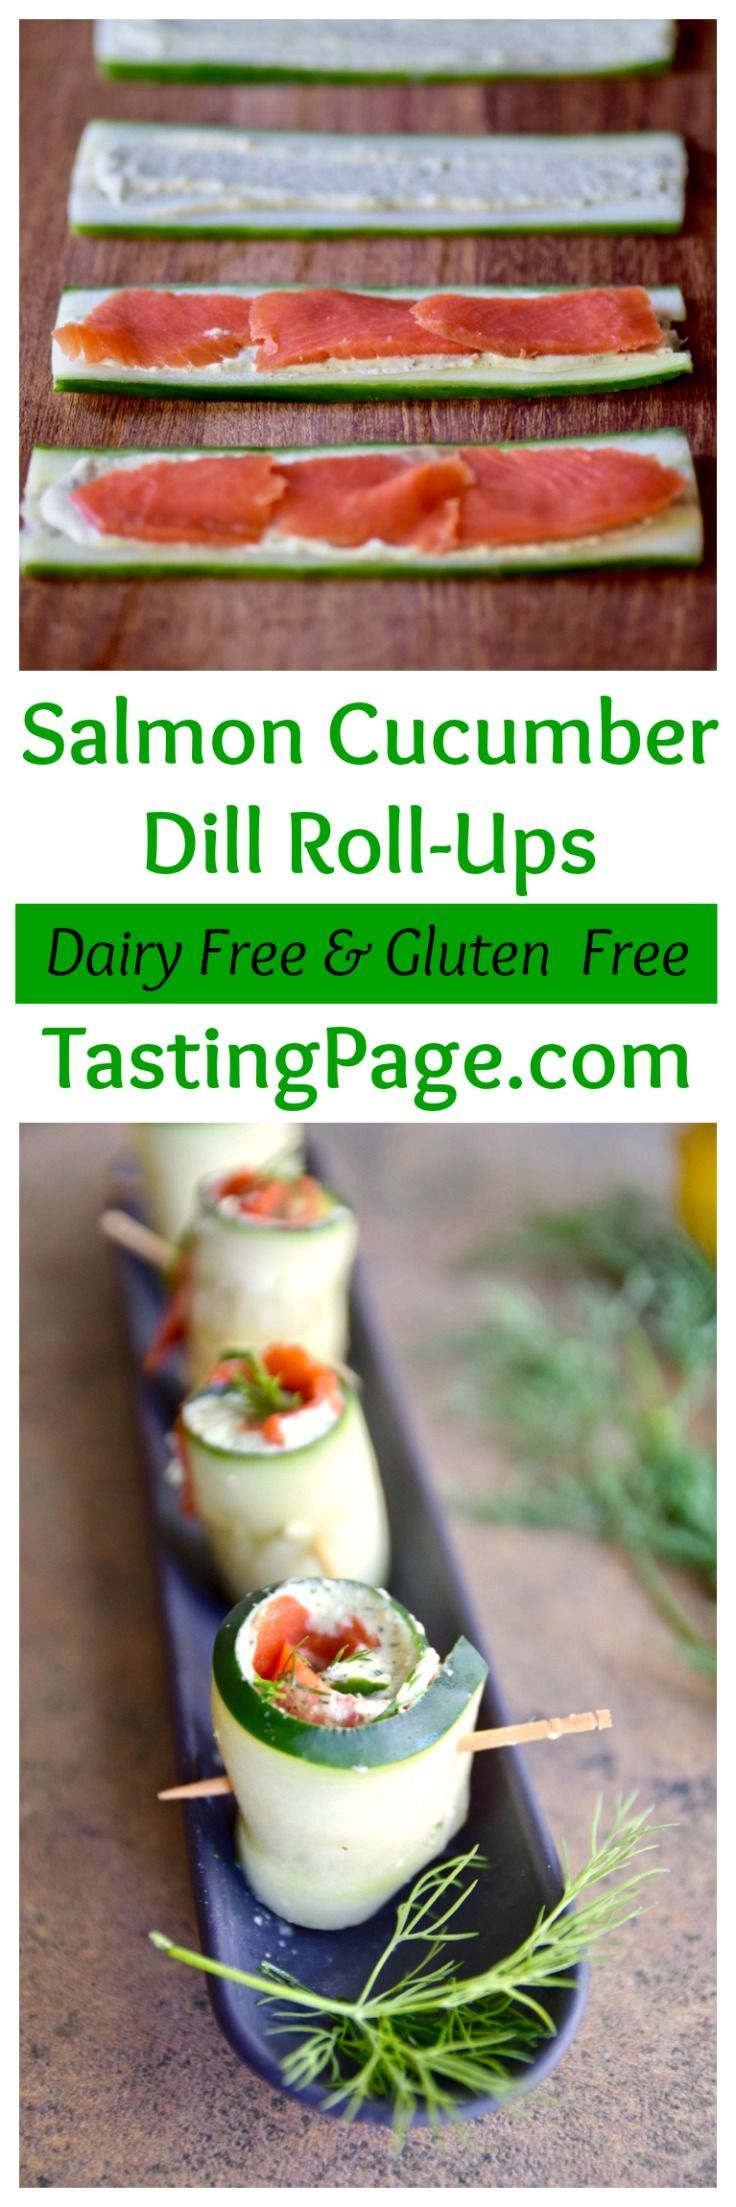 Salmon Cucumber Roll Ups are an easy gluten free, dairy free appetizer to serve at the holidays | http://TastingPage.com